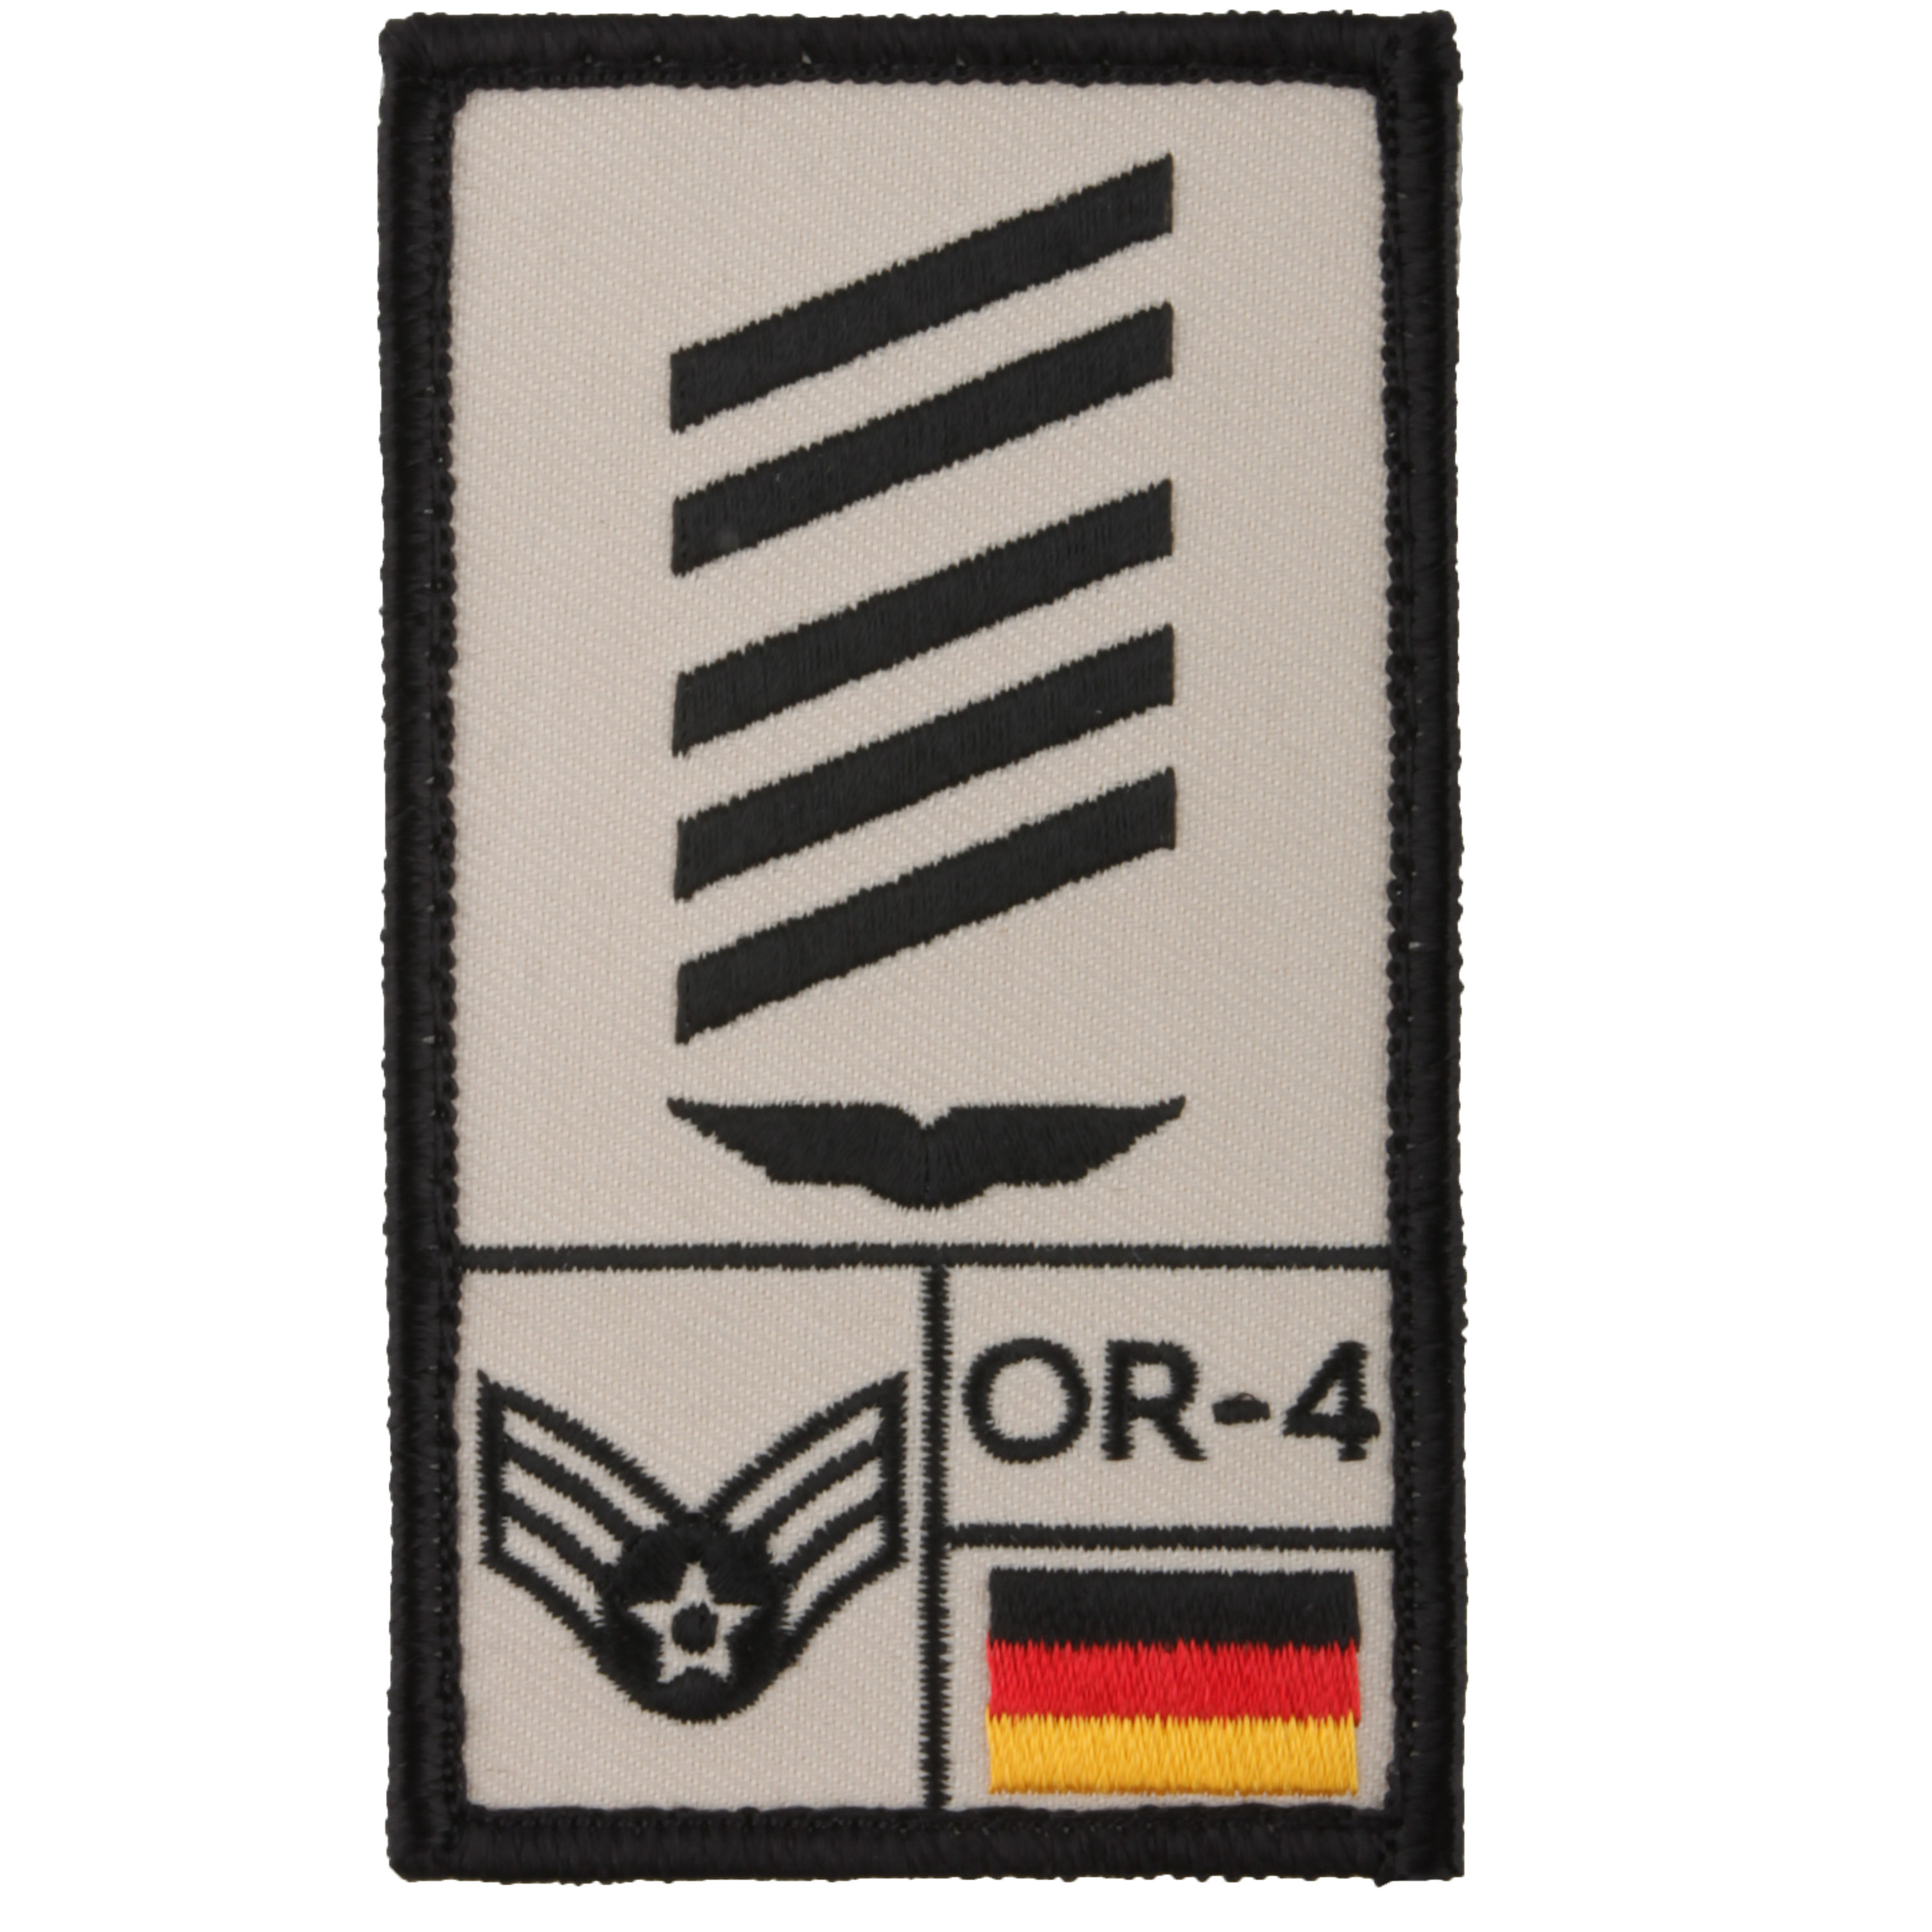 Café Viereck Rank Patch OSG Luftwaffe sand